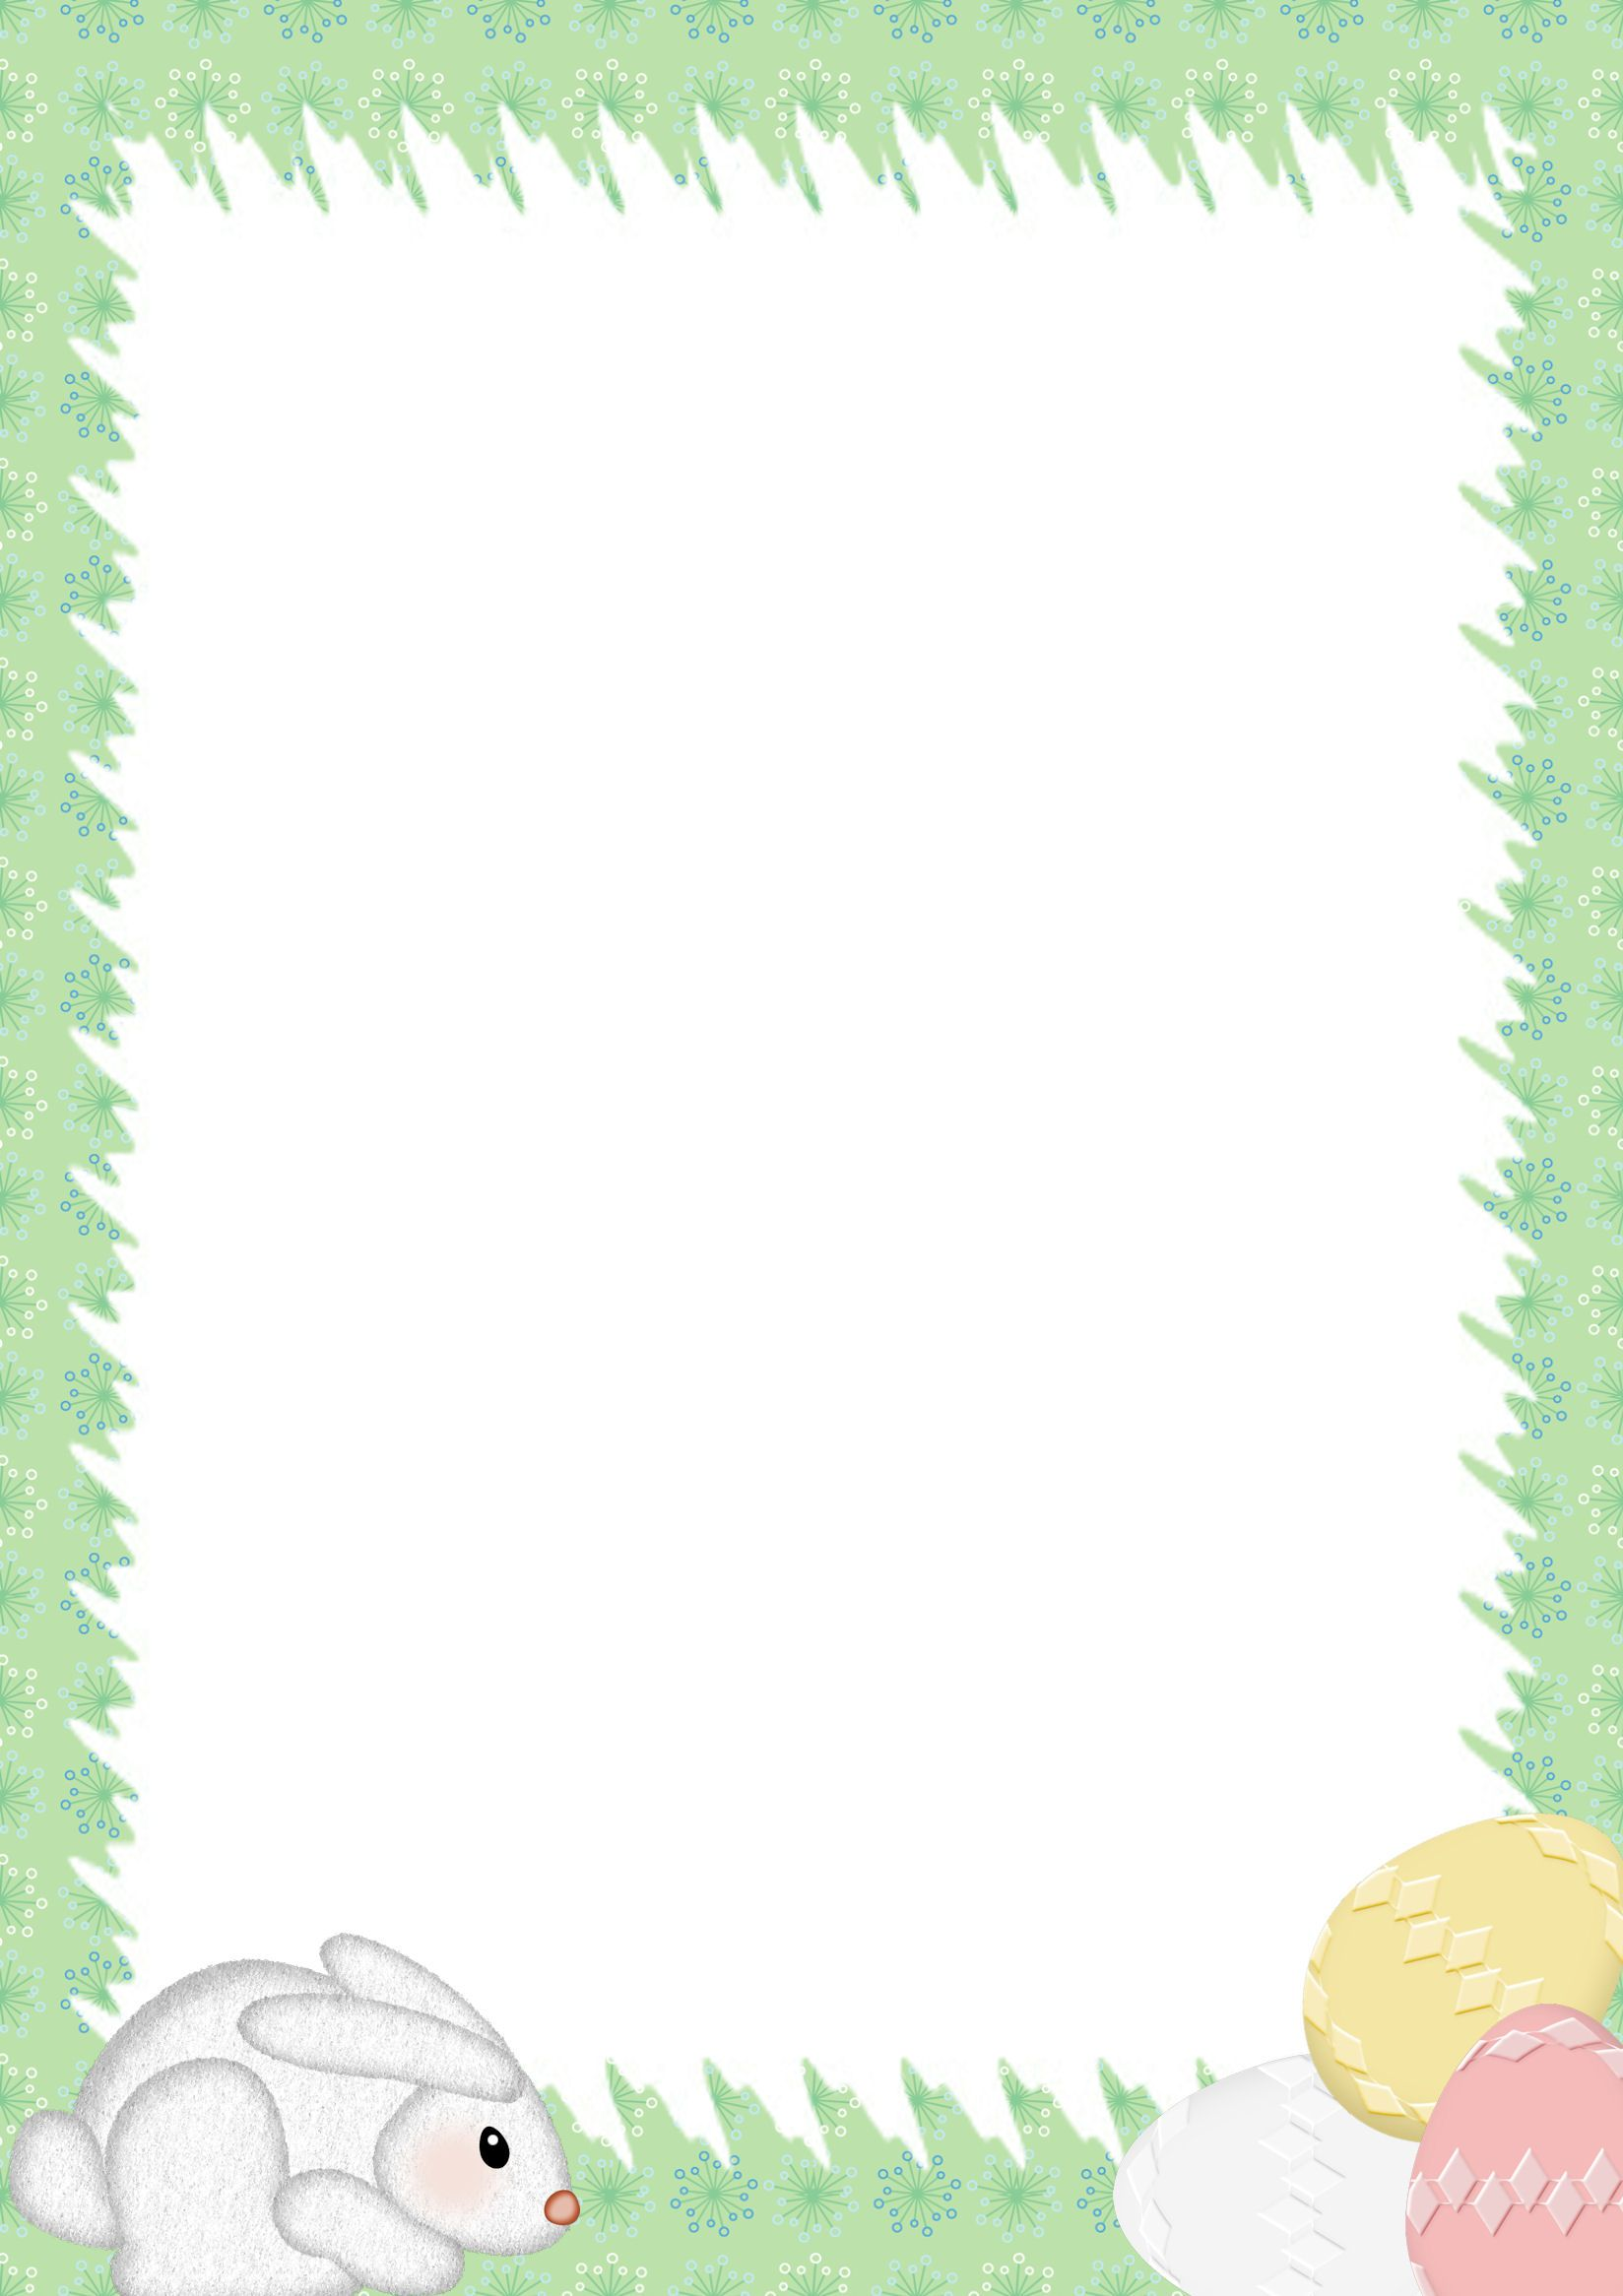 Easter Stationery | Microsoft Word Border Templates  Microsoft Word Page Border Templates